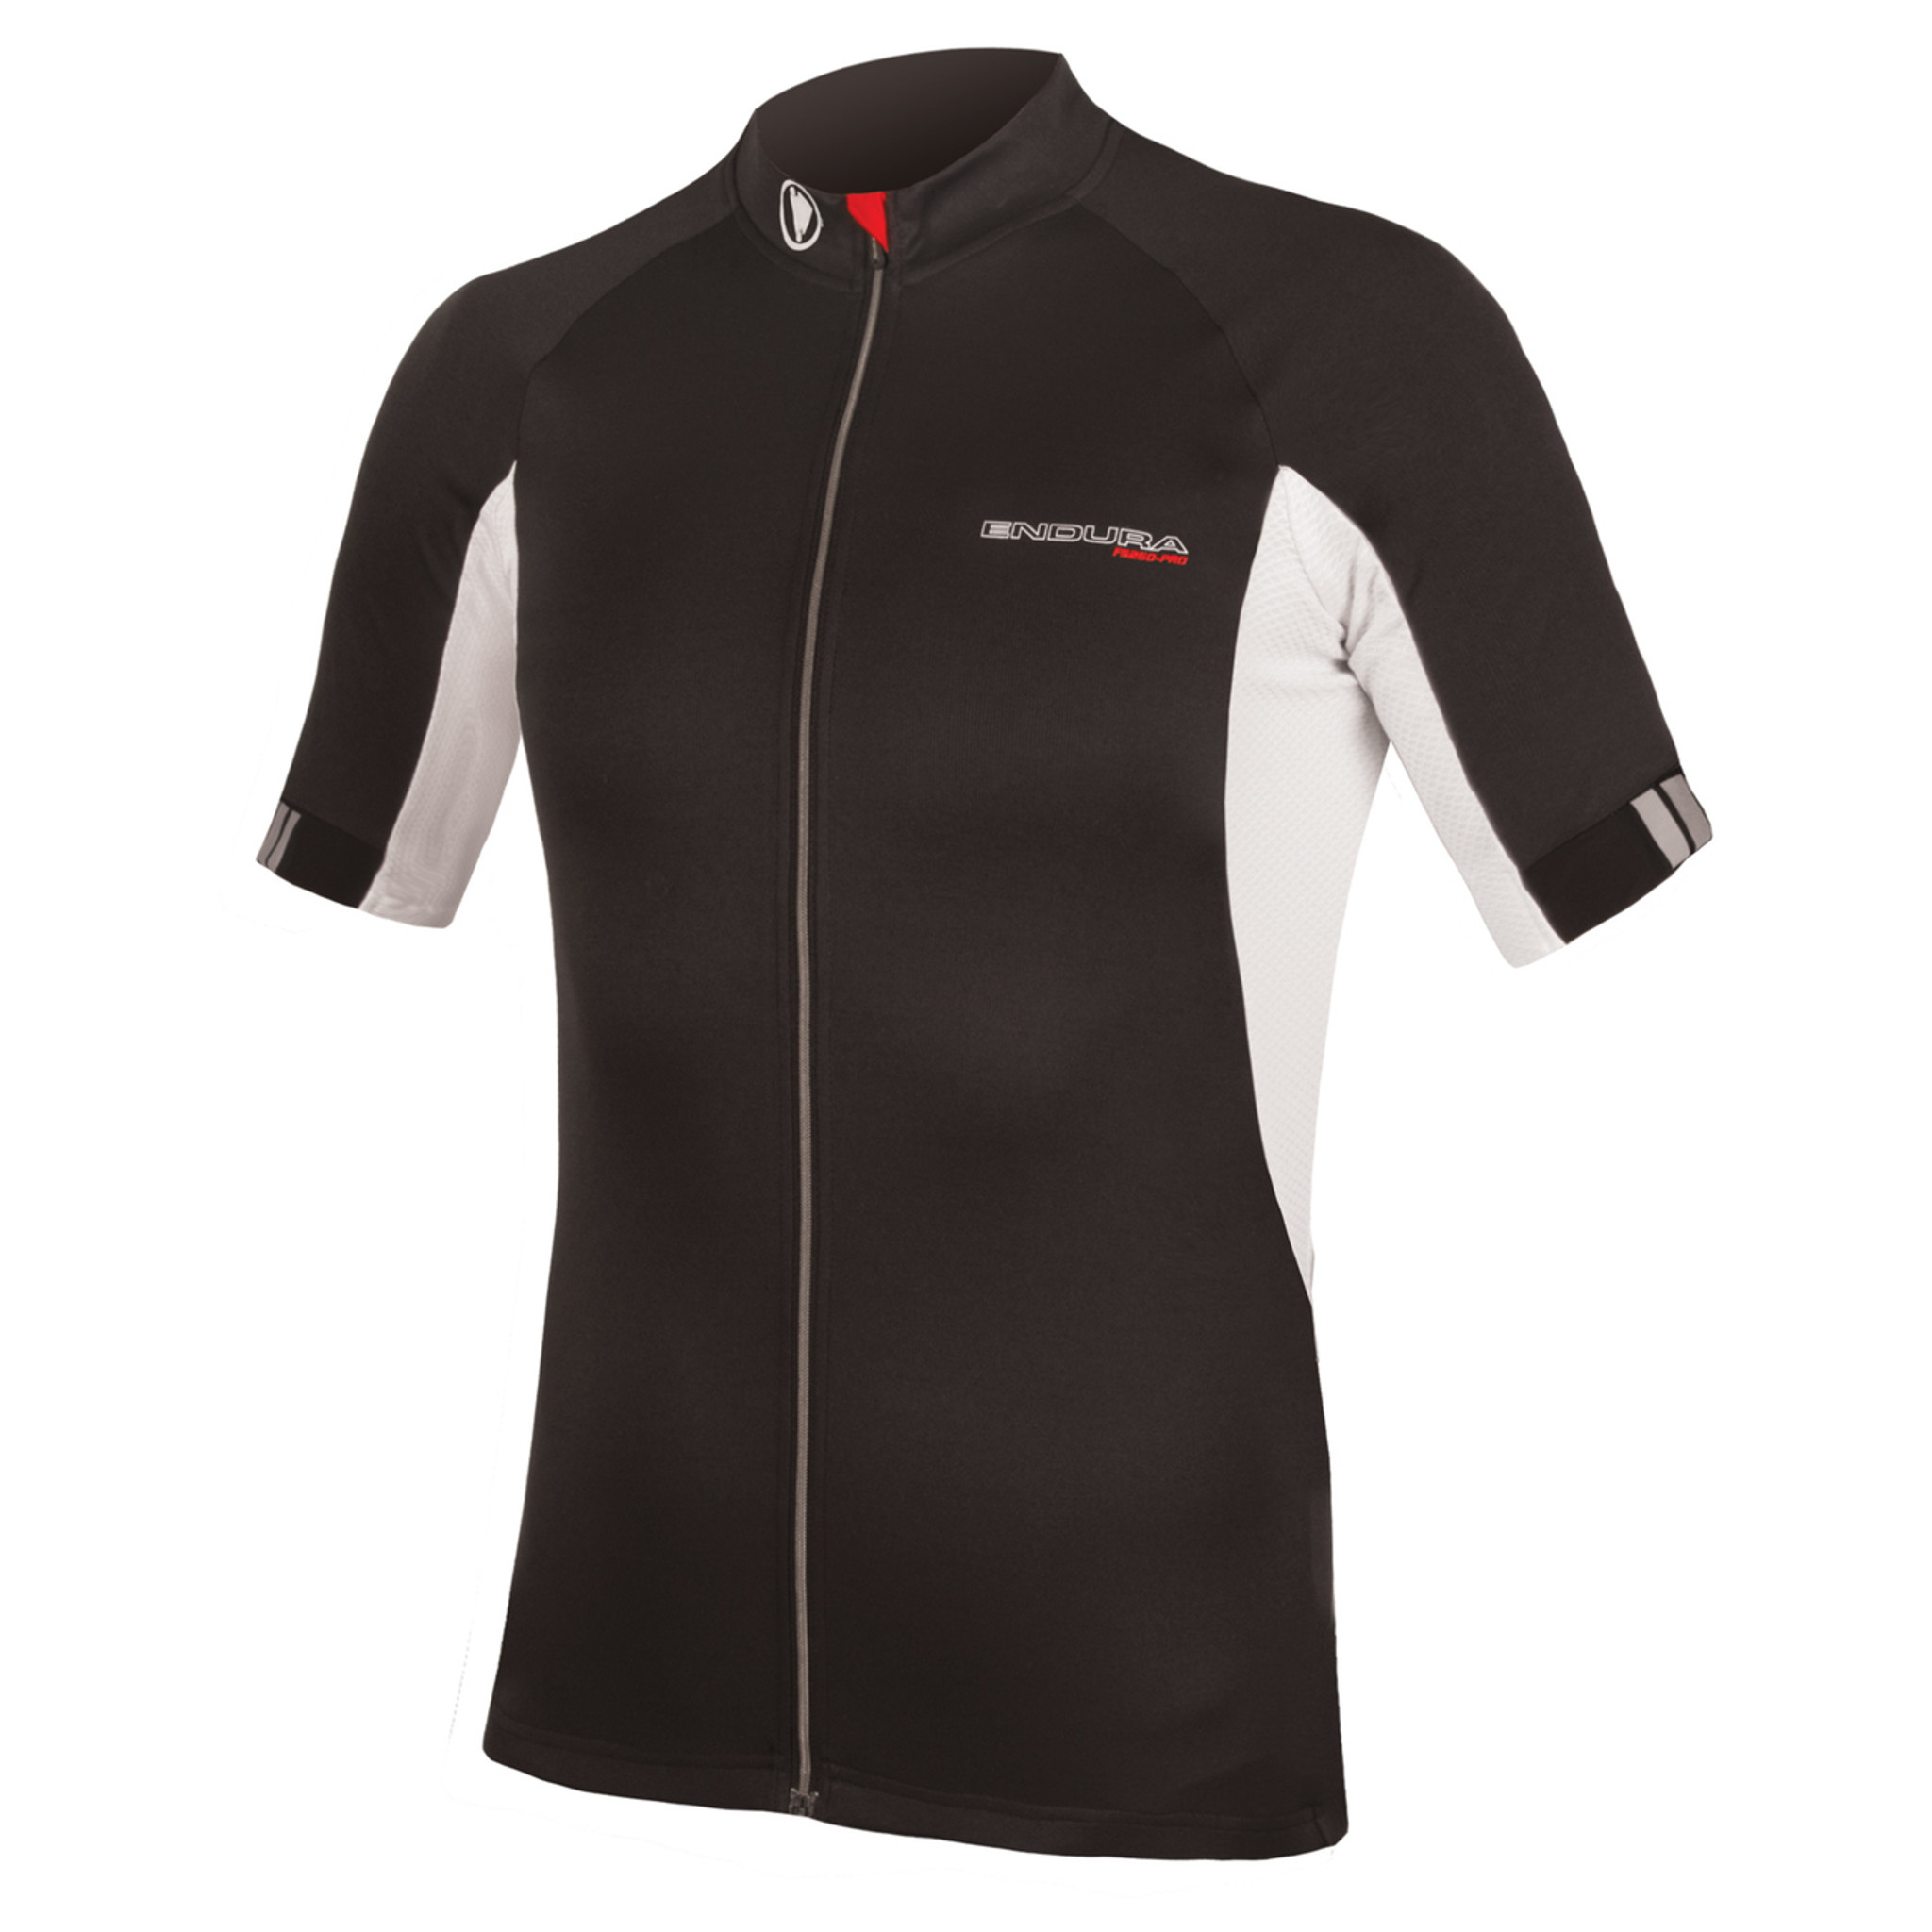 Home · Bike · Endura - FS260-Pro III Men s Short Sleeve Jersey · Black bd31769ac